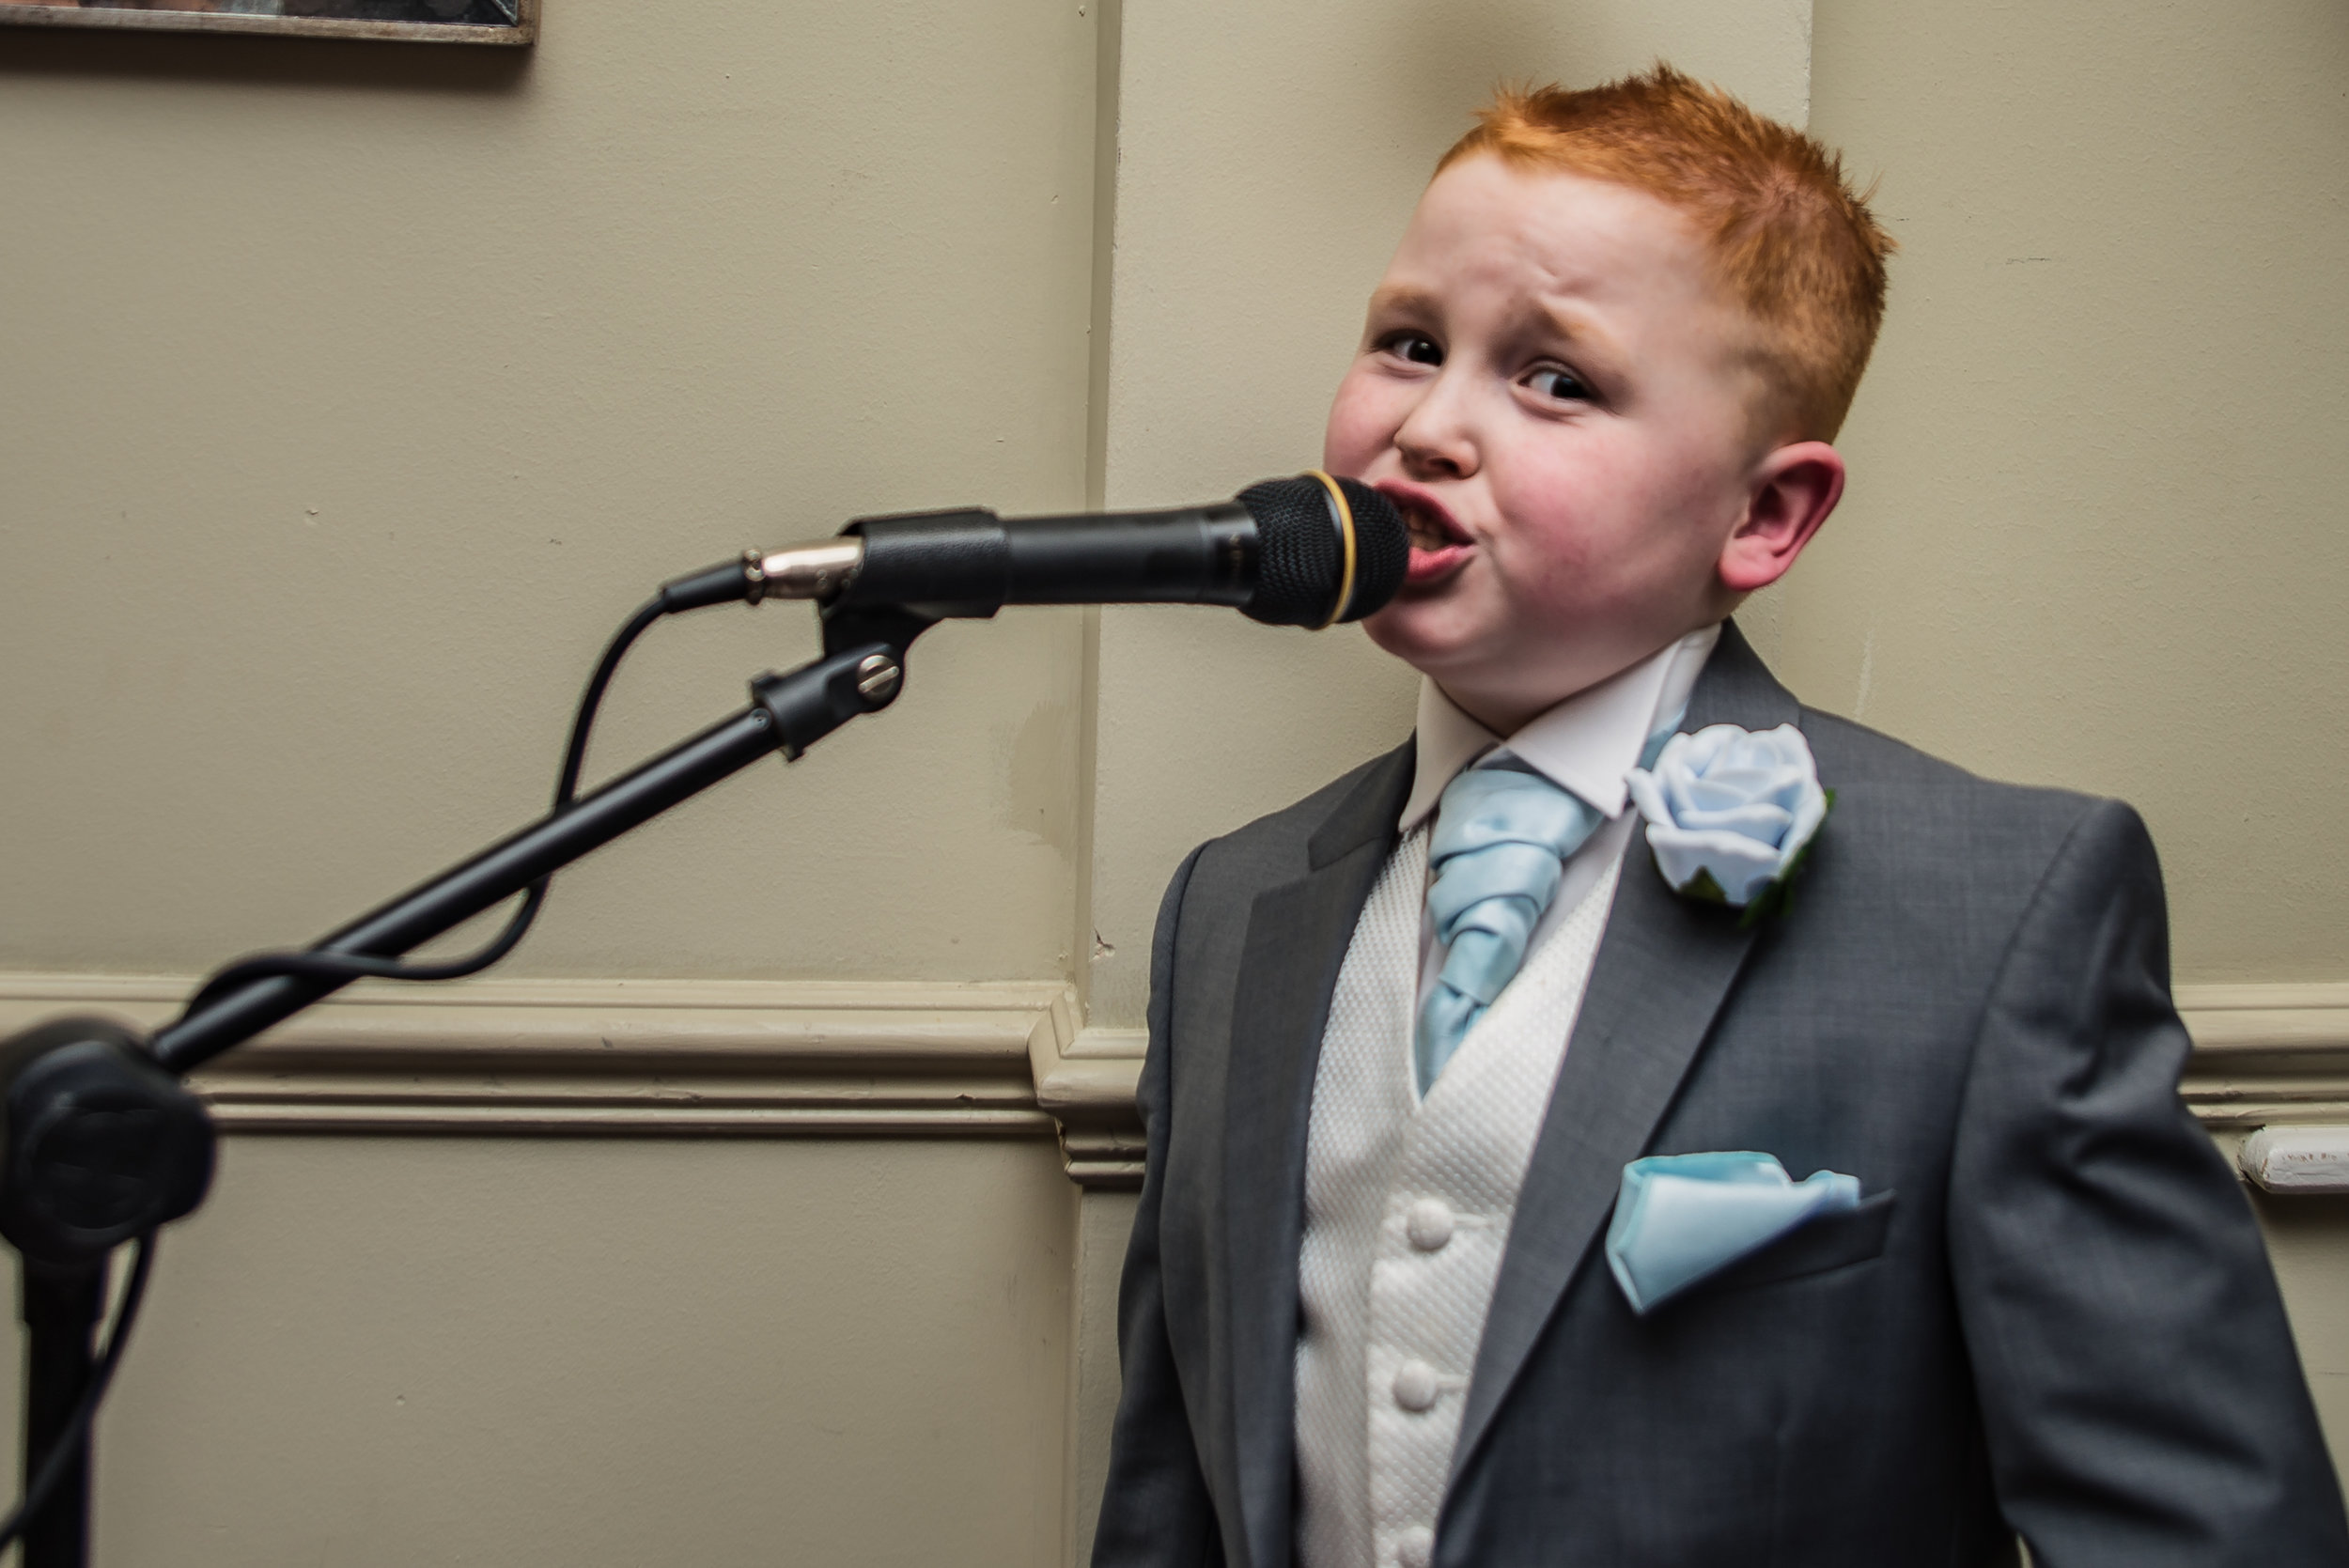 wedding photography and wedding videography, pageboy stealing the show